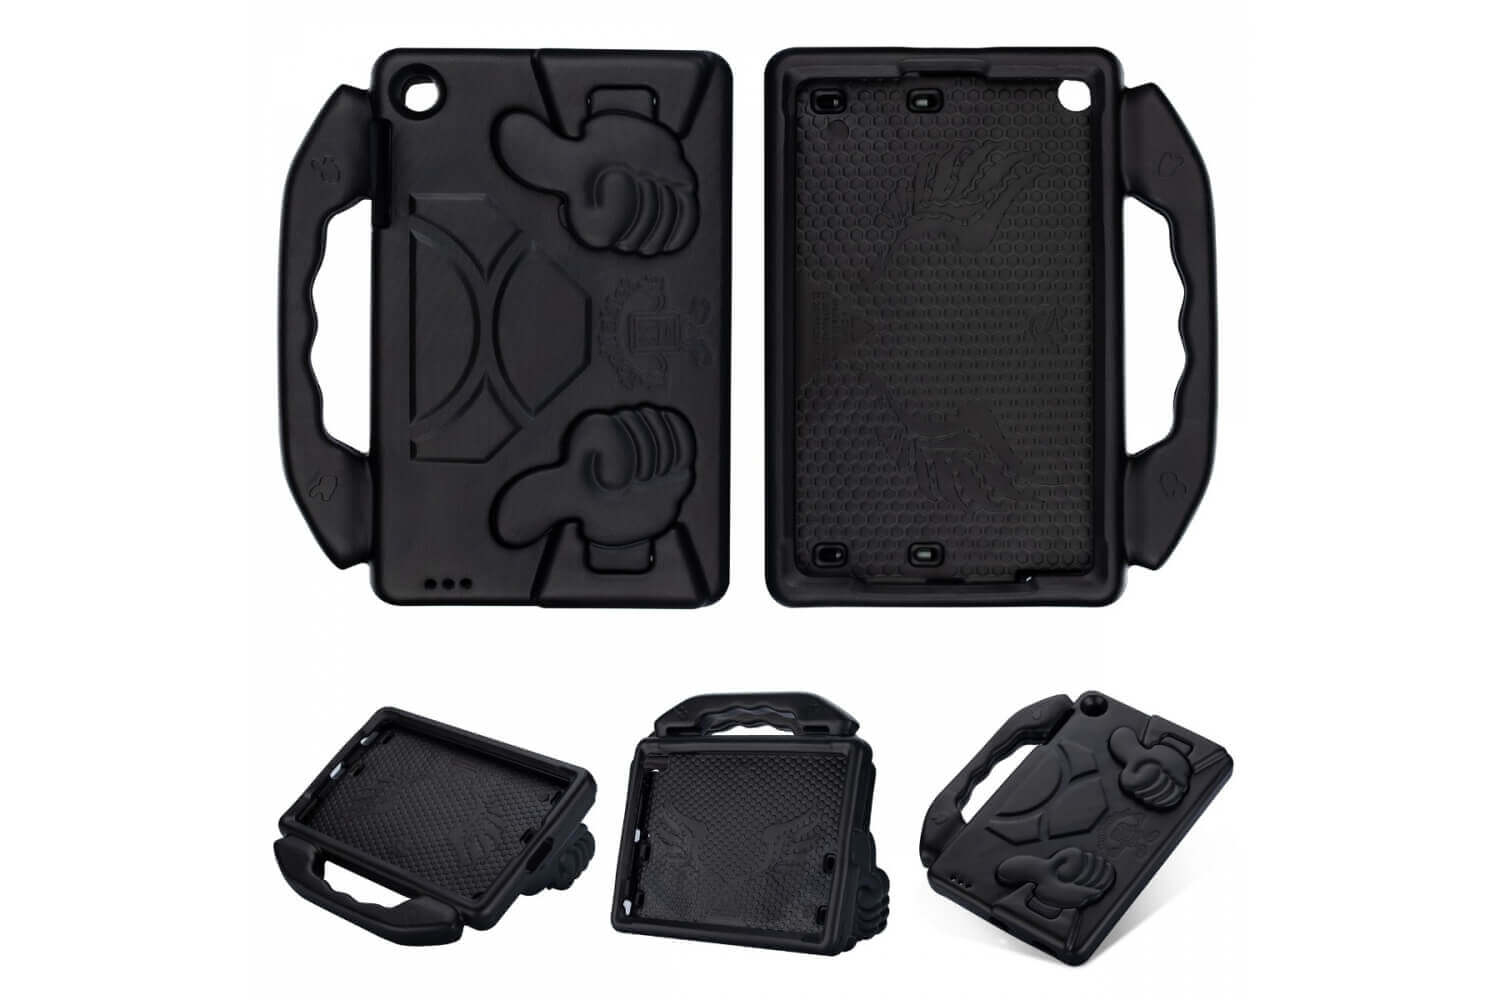 samsung galaxy tab a 10.1 2019 kid proof case black